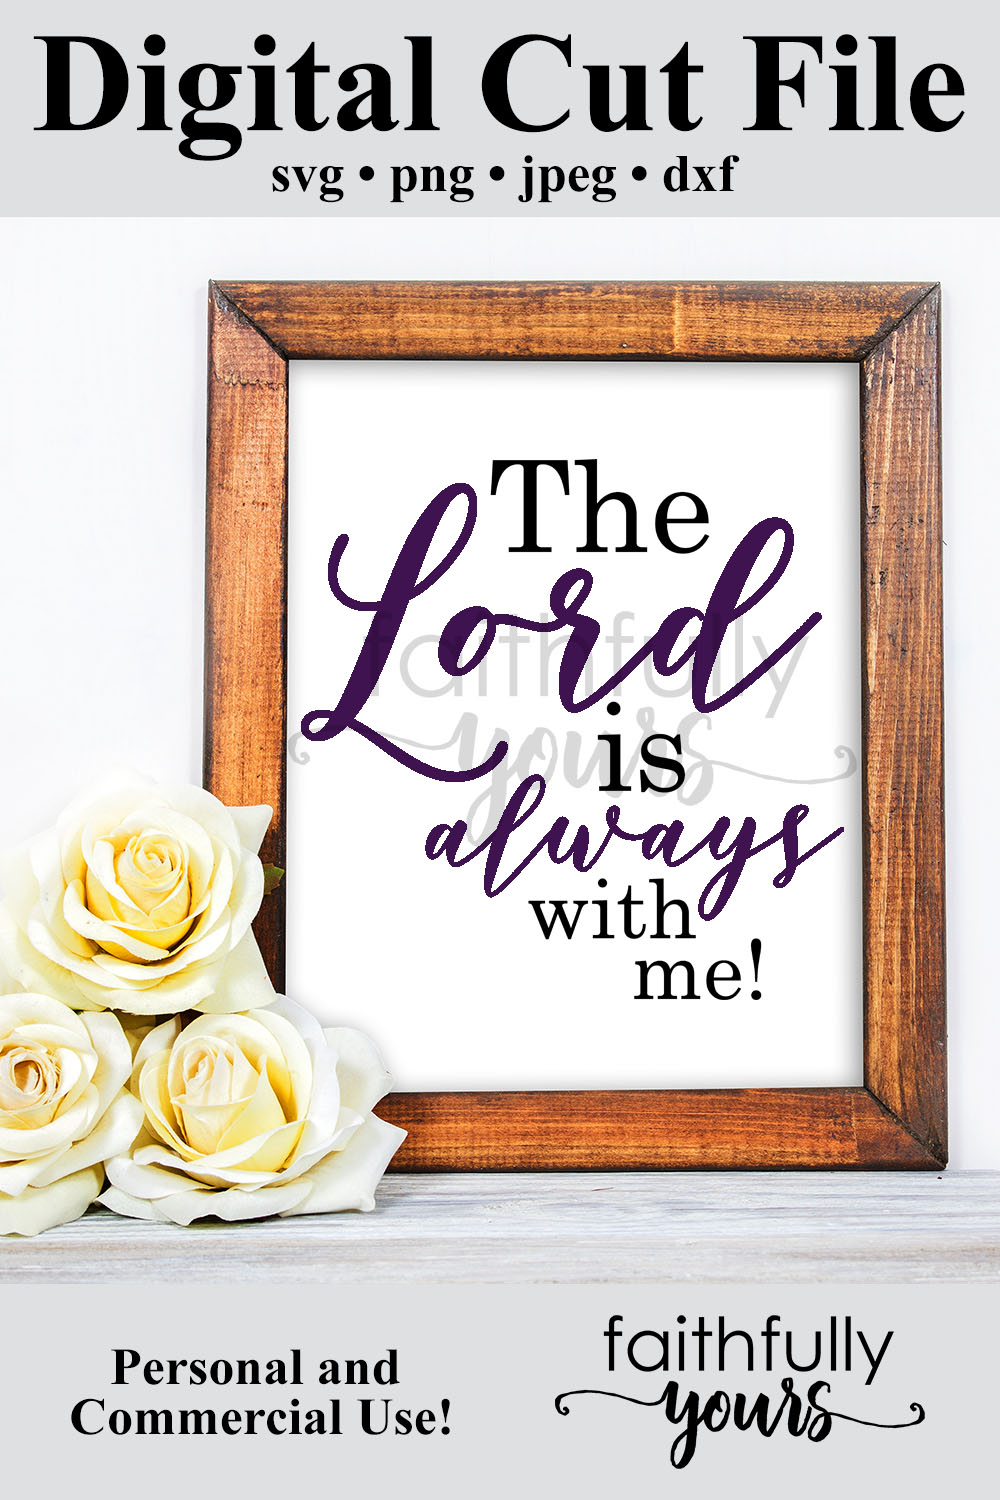 The lord is always with me svg digital cut file example image 5